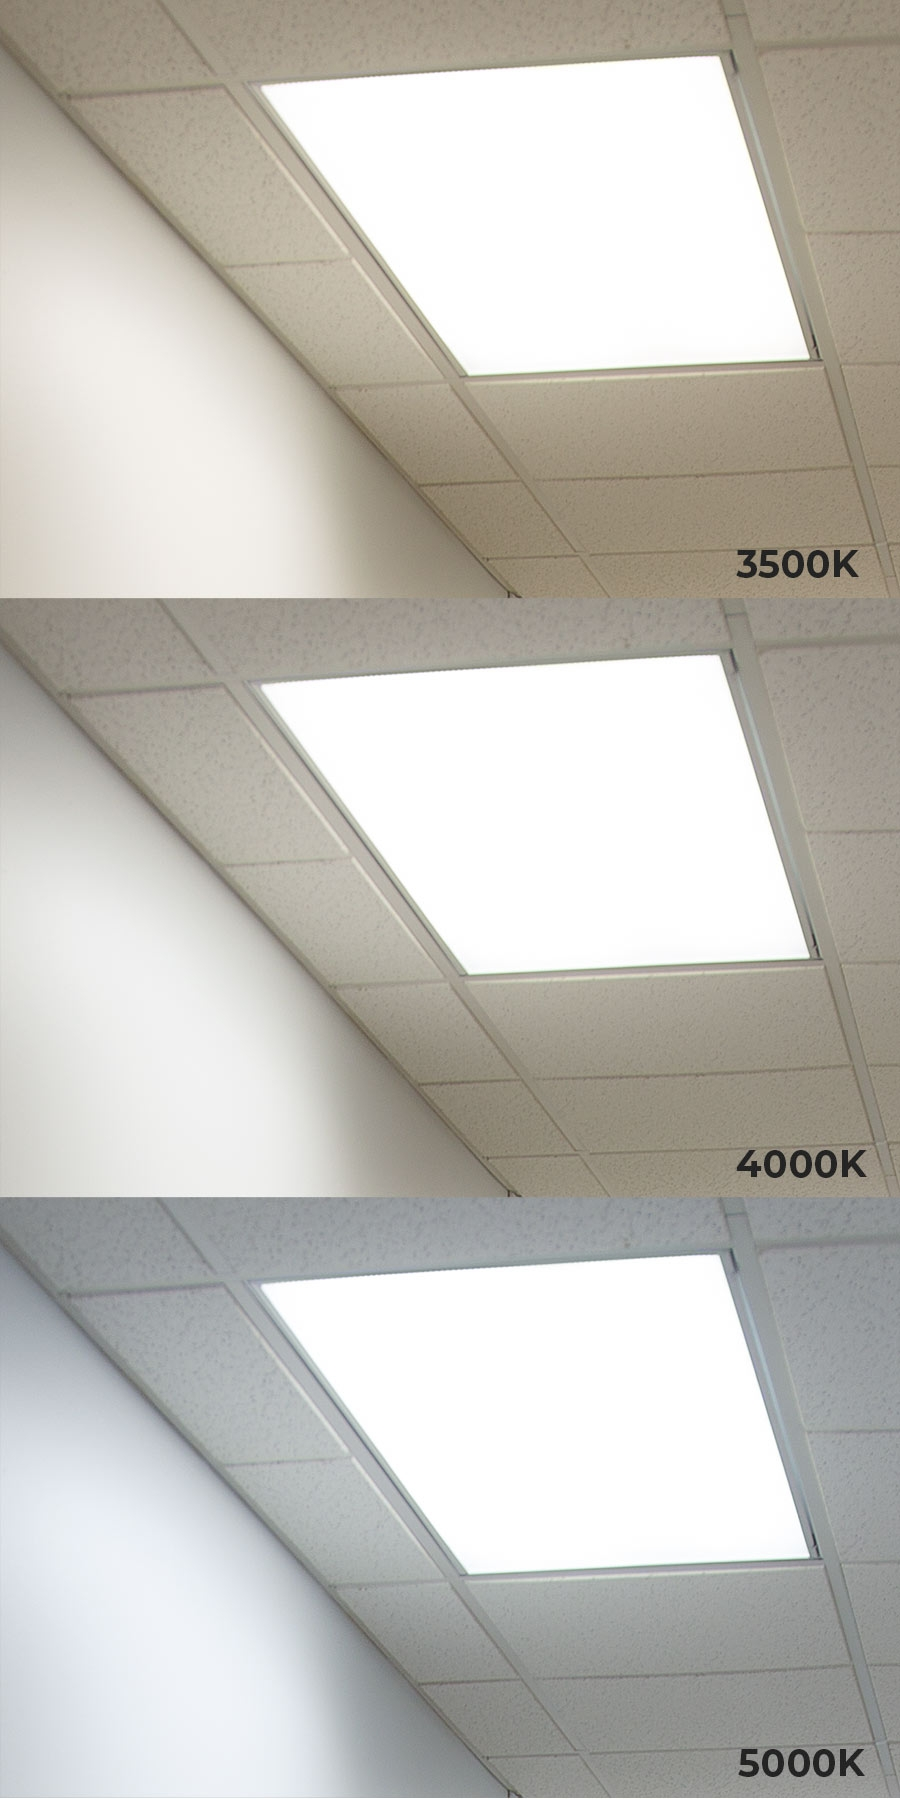 Panel Light Led Panel Light 2x4 5000 Lumens 50w Dimmable Even Glow Light Fixture Drop Ceiling 5000k 4000k 3500k